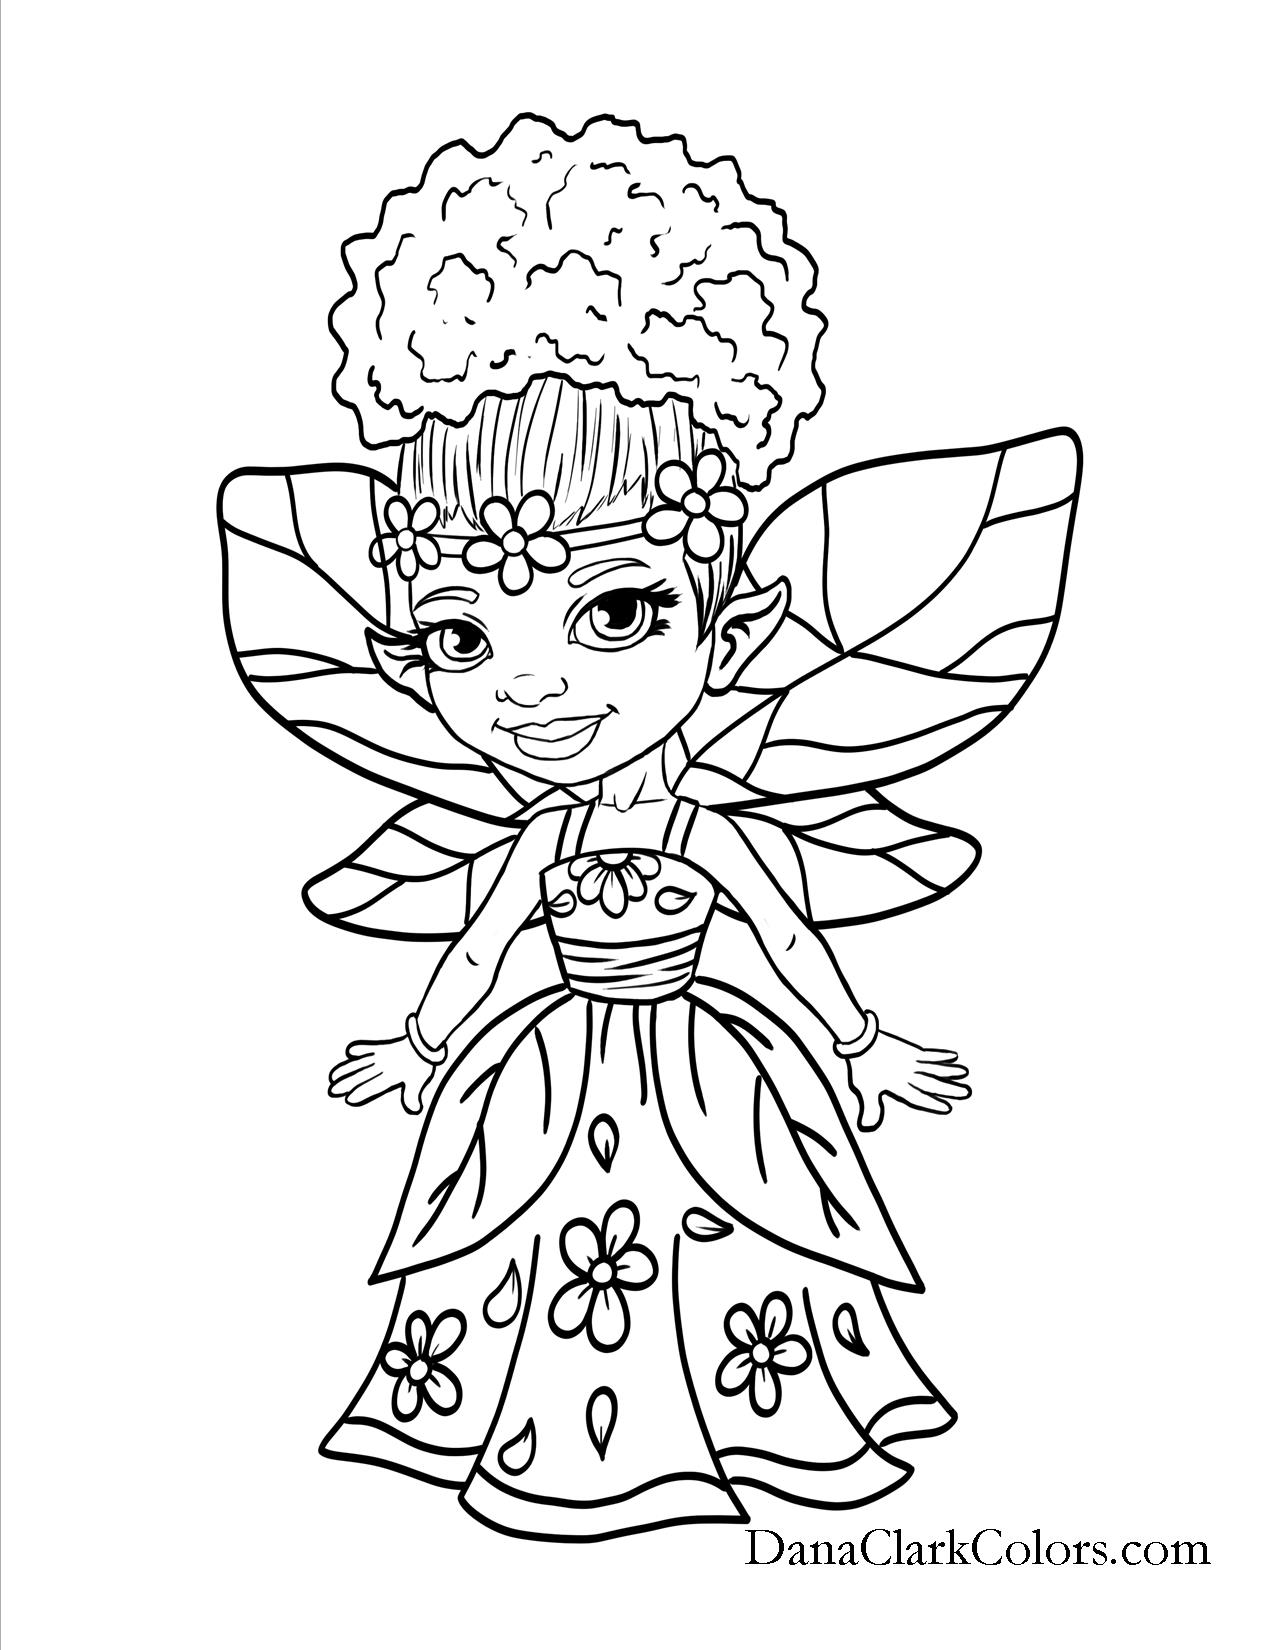 free coloring pages like metabots | Free Coloring Page 10 - DanaClarkColors.com